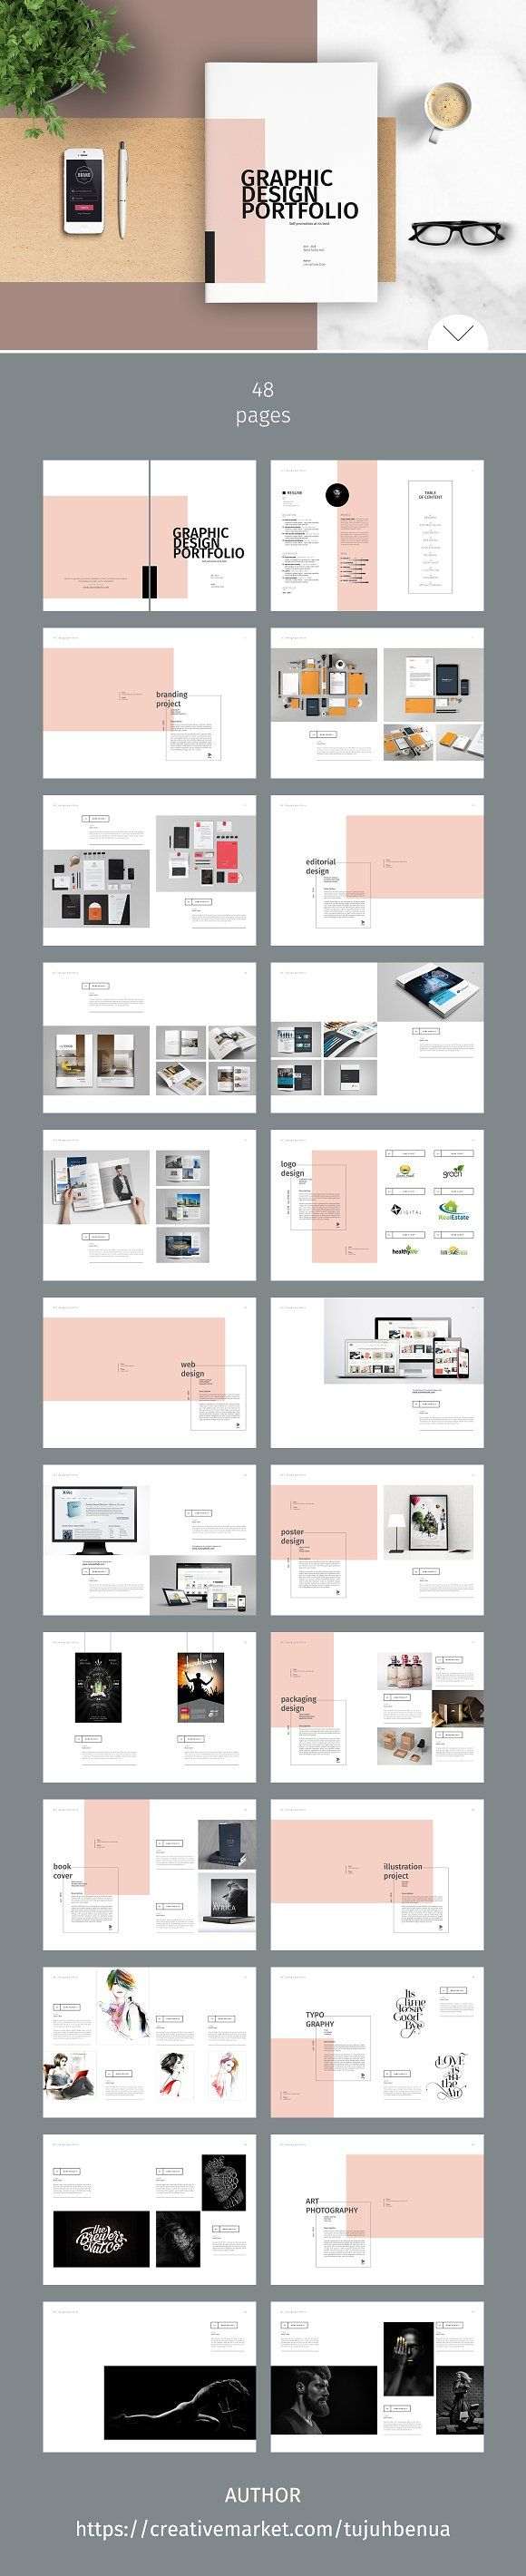 Graphic Design Portfolio Template by tujuhbenua on @creativemarket